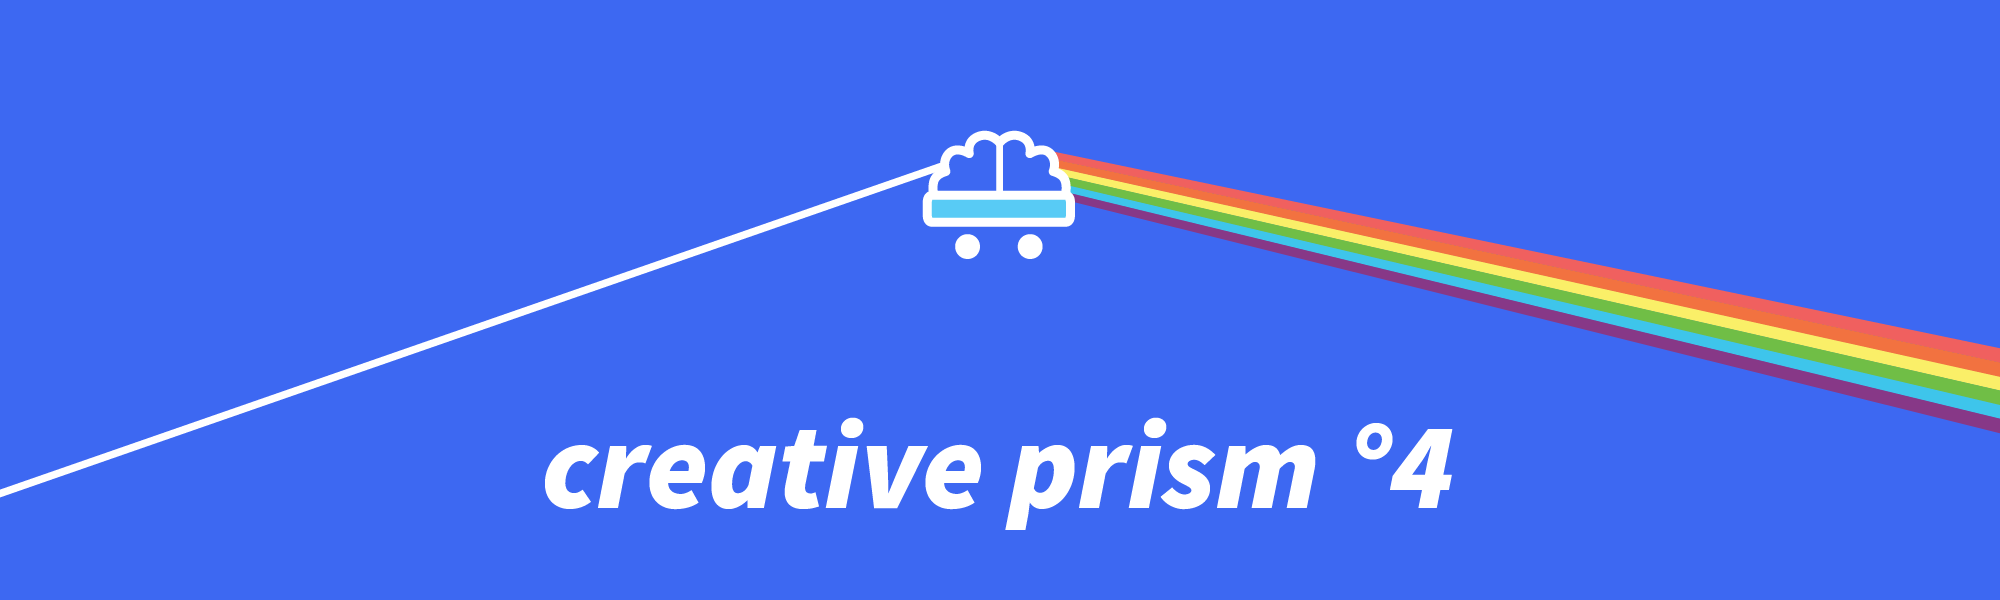 Creative_Prism_4@2x.png